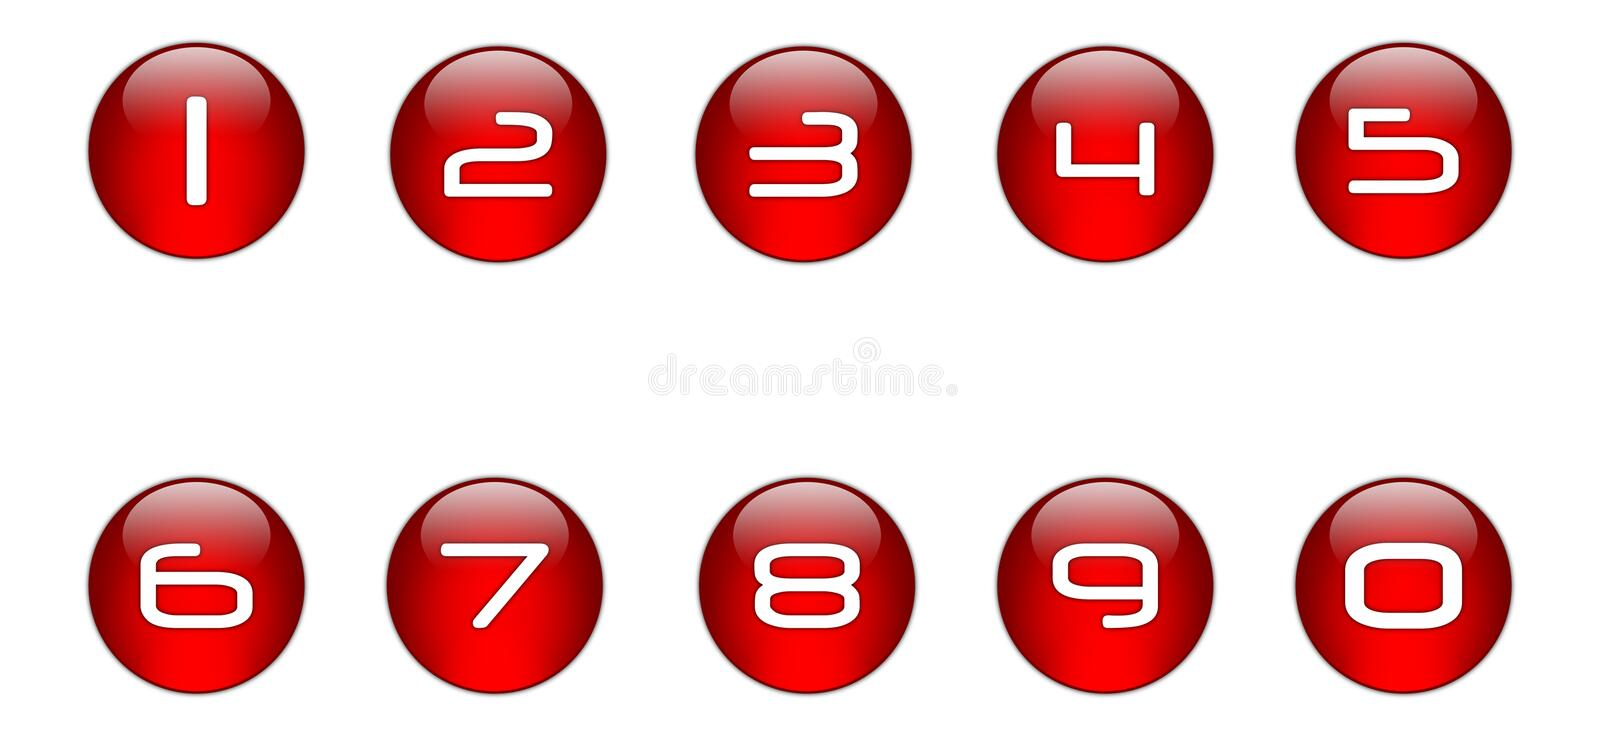 Red Numbers Icons Set [01] Royalty Free Stock Image